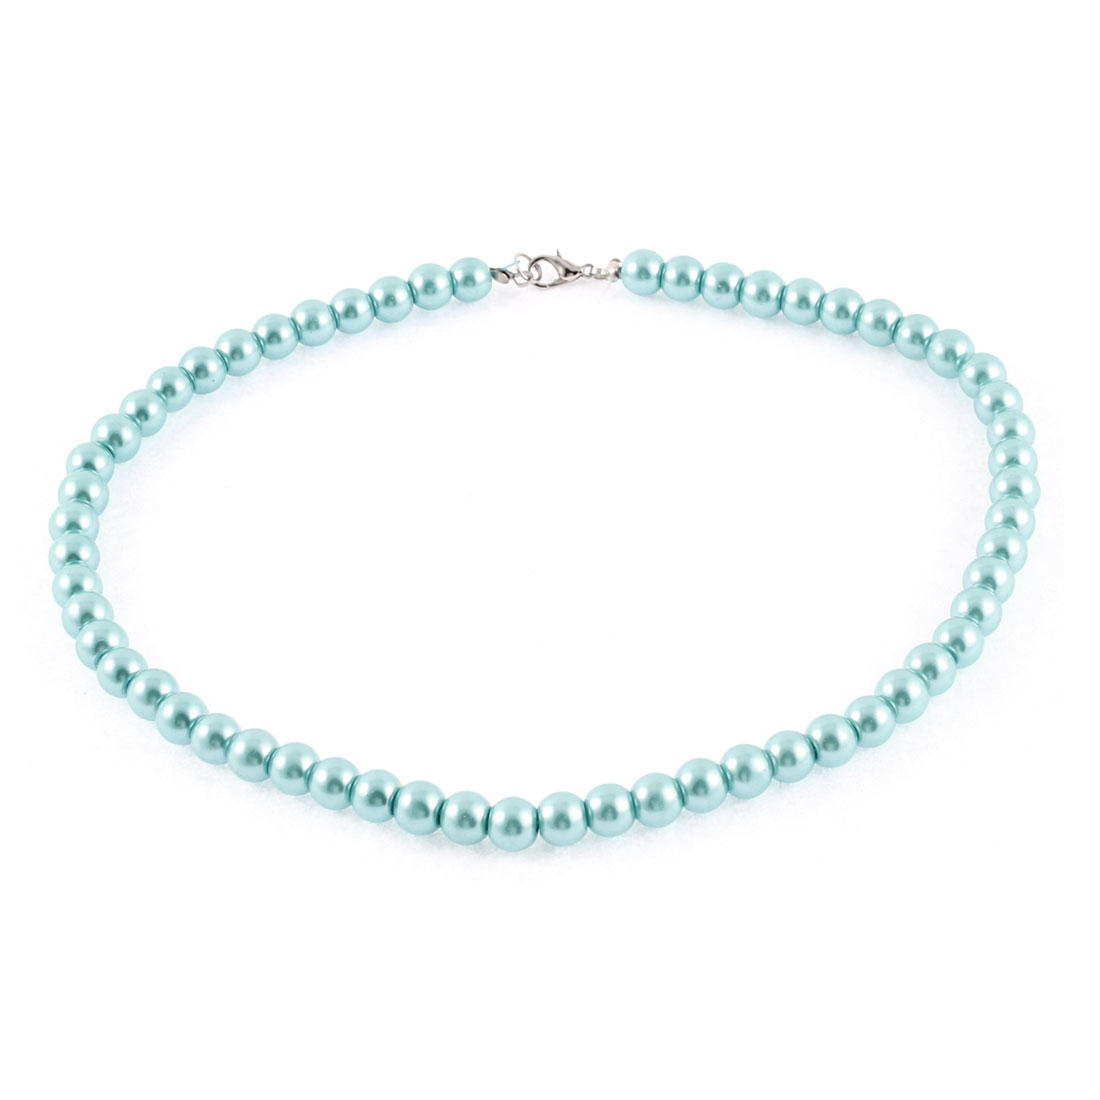 Woman Metal Clasp Imitation Pearl Beaded Linked Necklace Neck Ornament Teal Blue